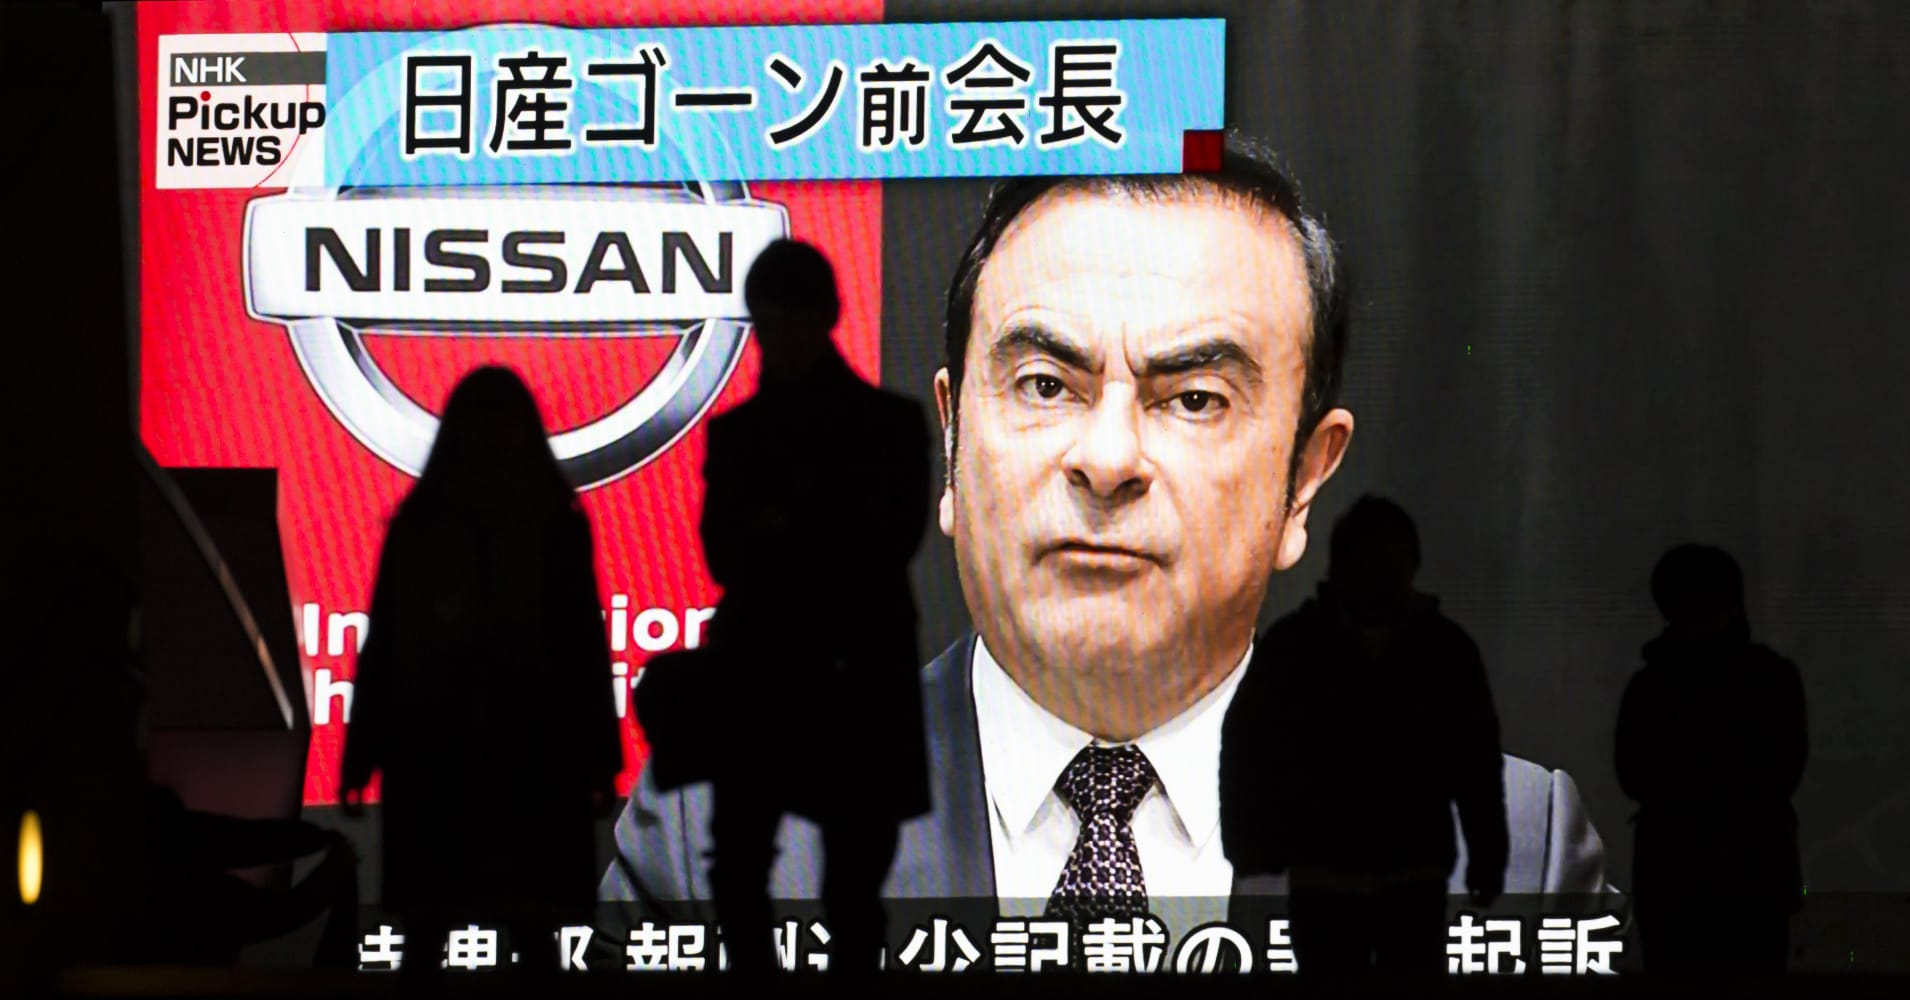 'I have been wrongly accused': Read the full statement from Nissan's Ghosn proclaiming his innocence